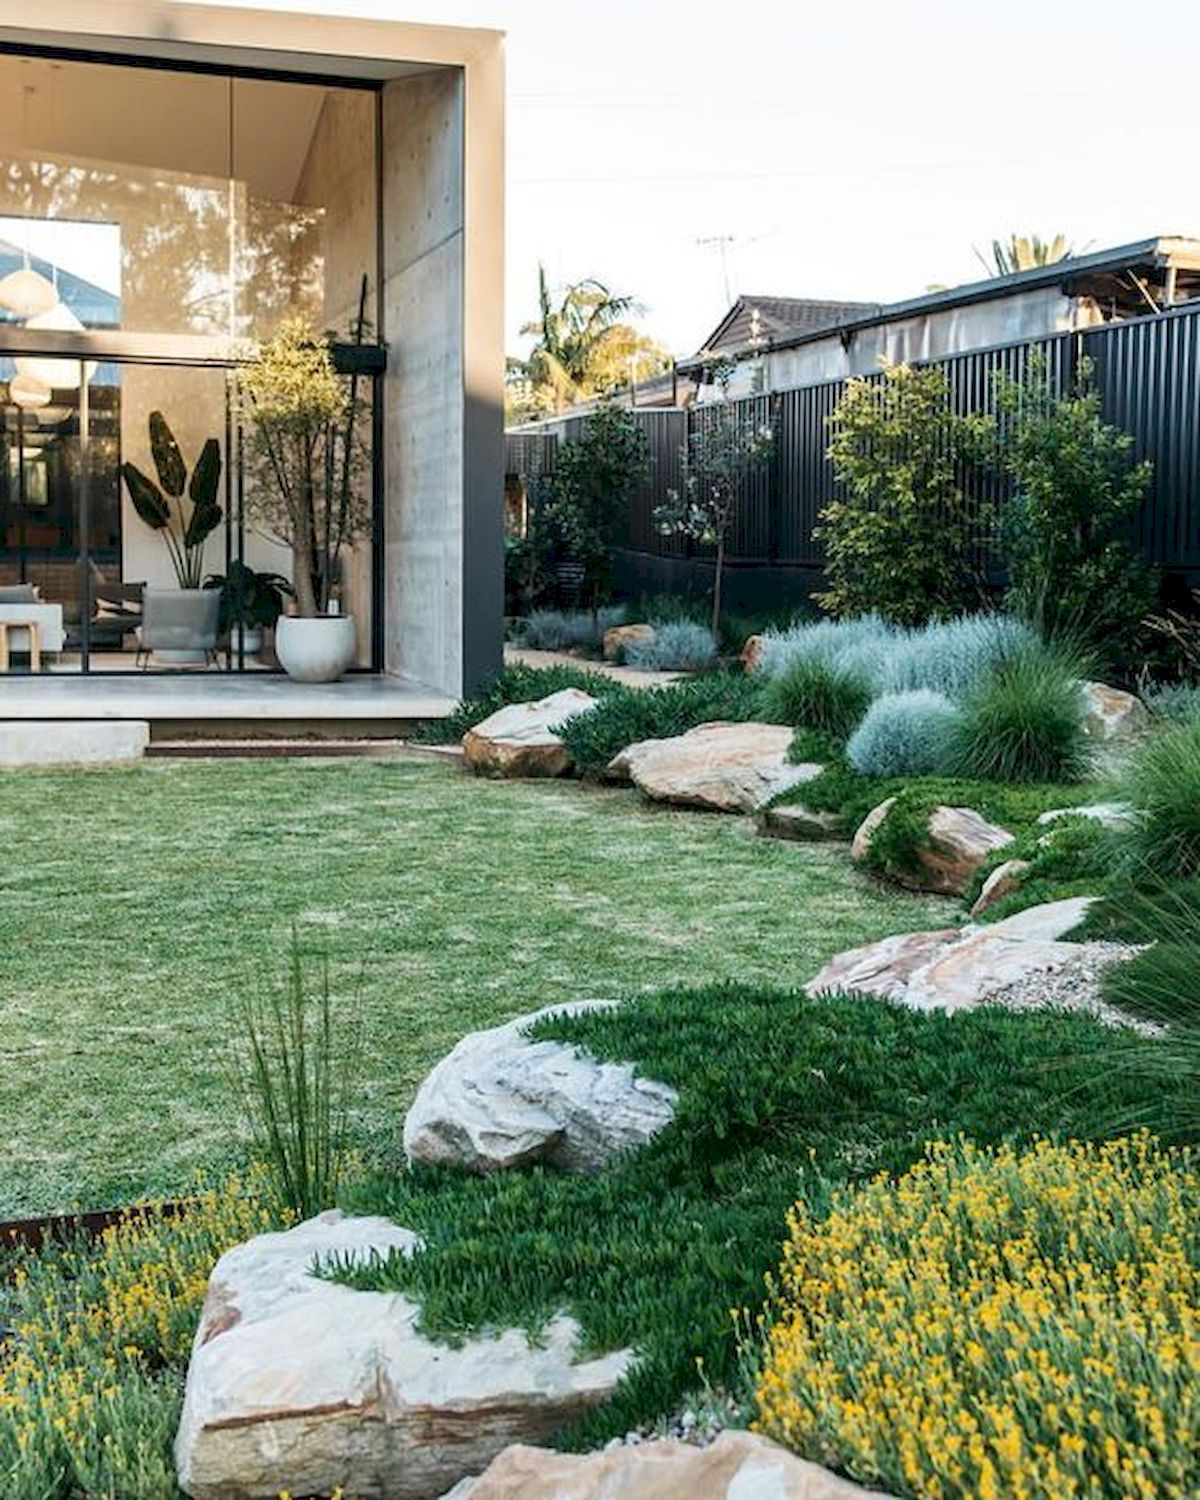 Best Image Of Garden Woodimages Co: 60 Beautiful Backyard Garden Design Ideas And Remodel